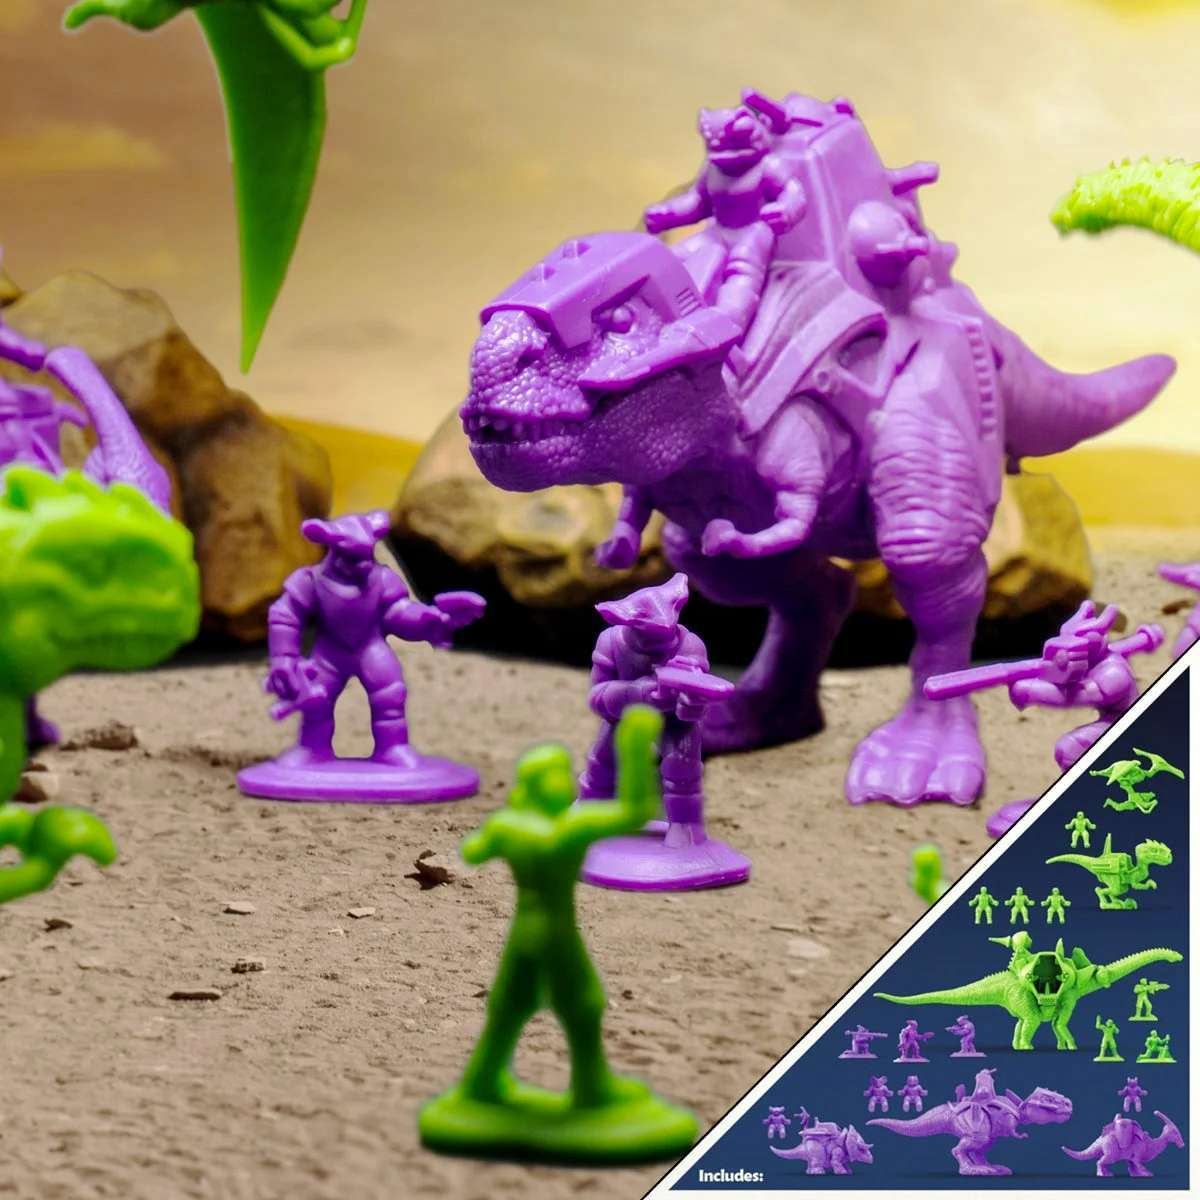 dino-riders-battle-pack